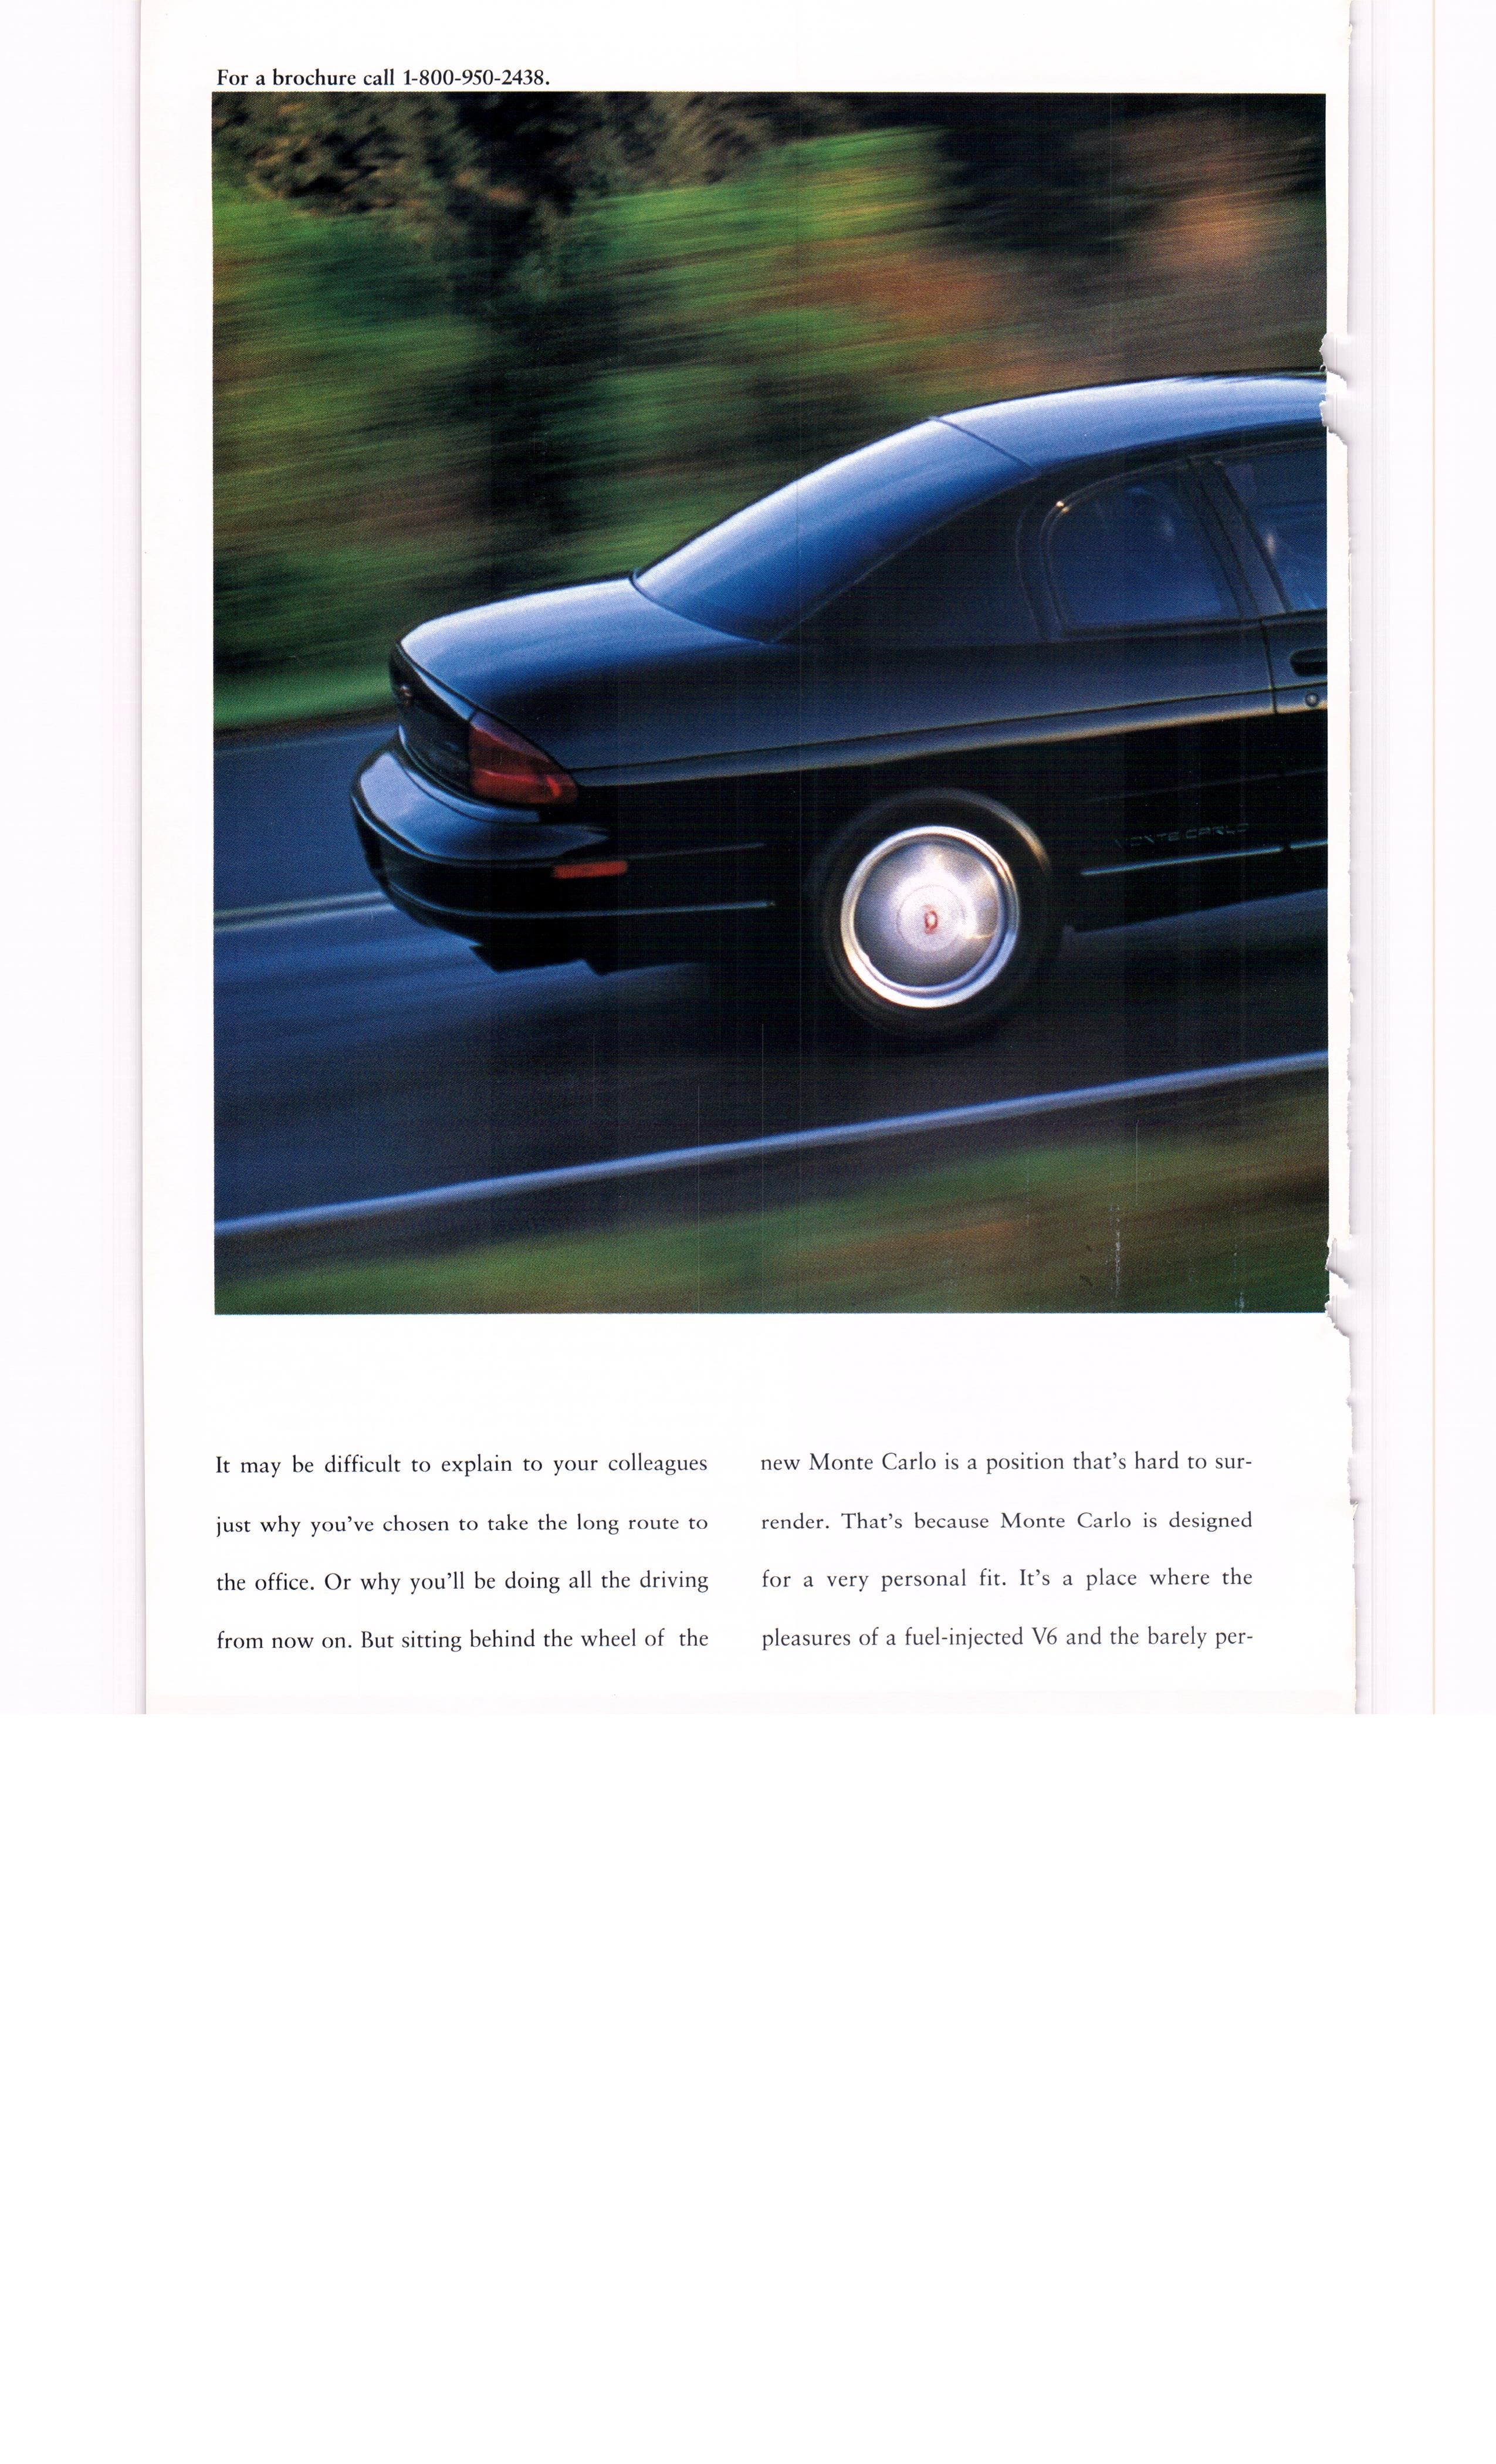 medium resolution of 1994 chevy monte carlo ad2 national geographic september 1994